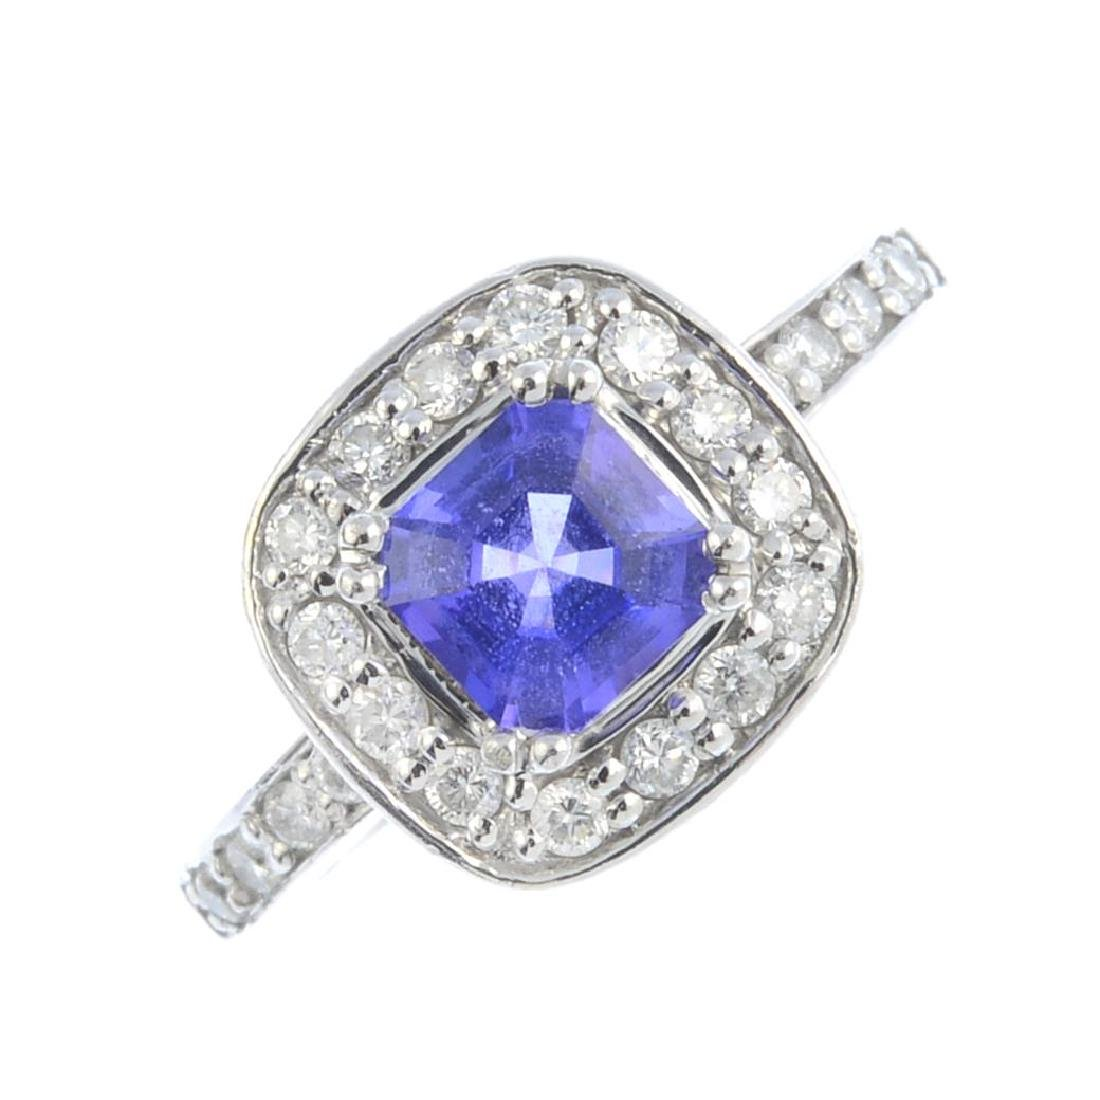 An 18ct gold tanzanite and diamond ring. Designed as a